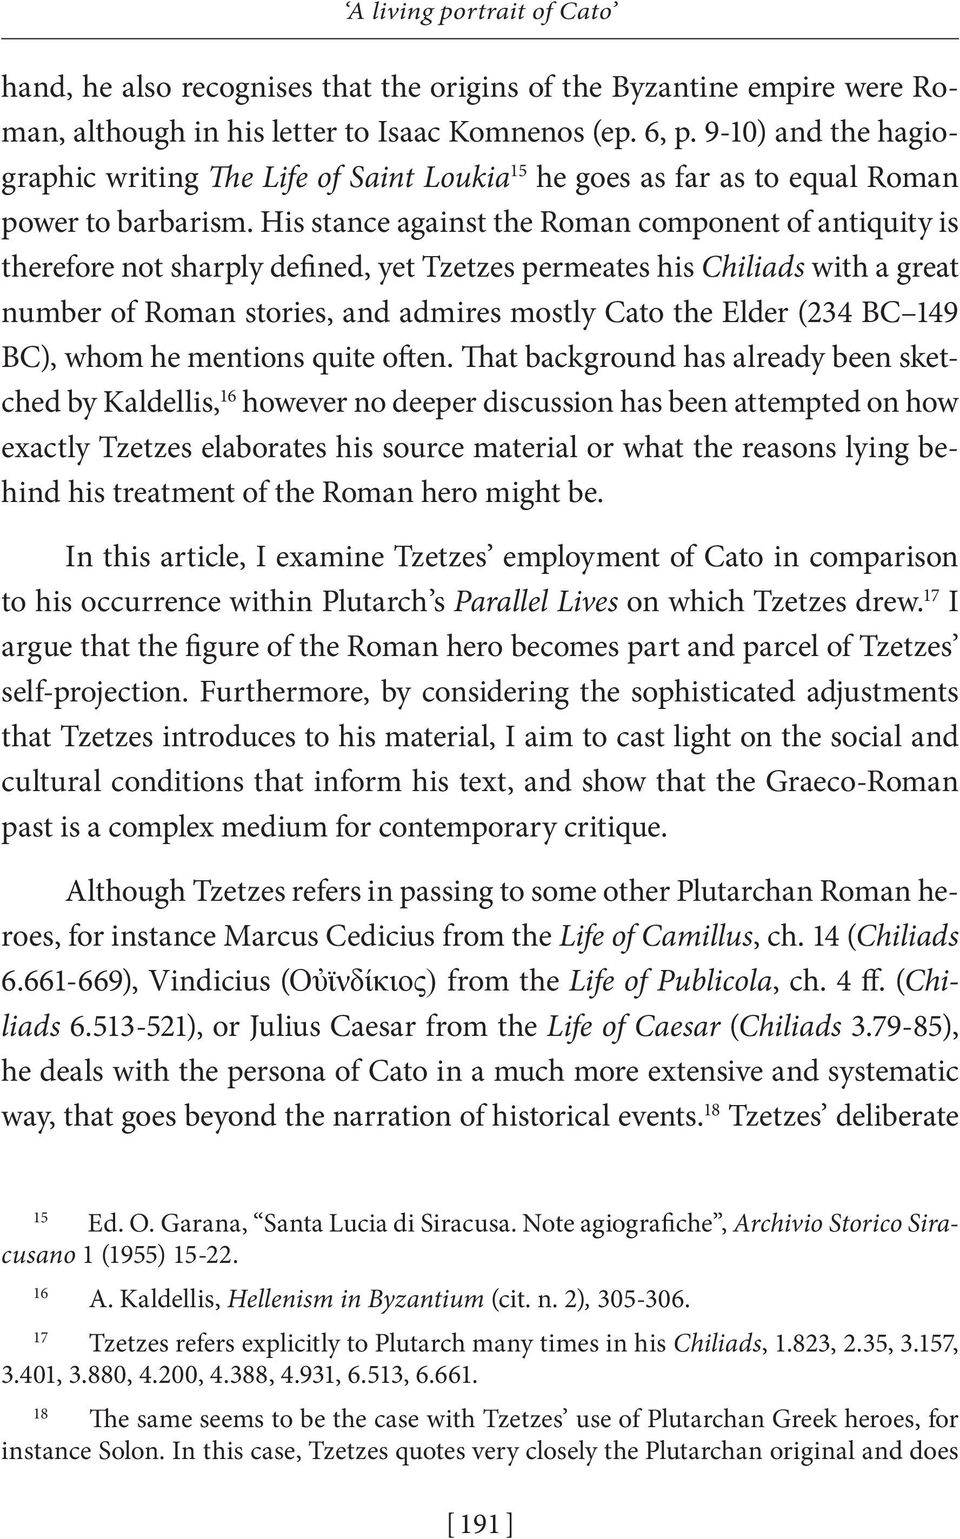 His stance against the Roman component of antiquity is therefore not sharply defined, yet Tzetzes permeates his Chiliads with a great number of Roman stories, and admires mostly Cato the Elder (234